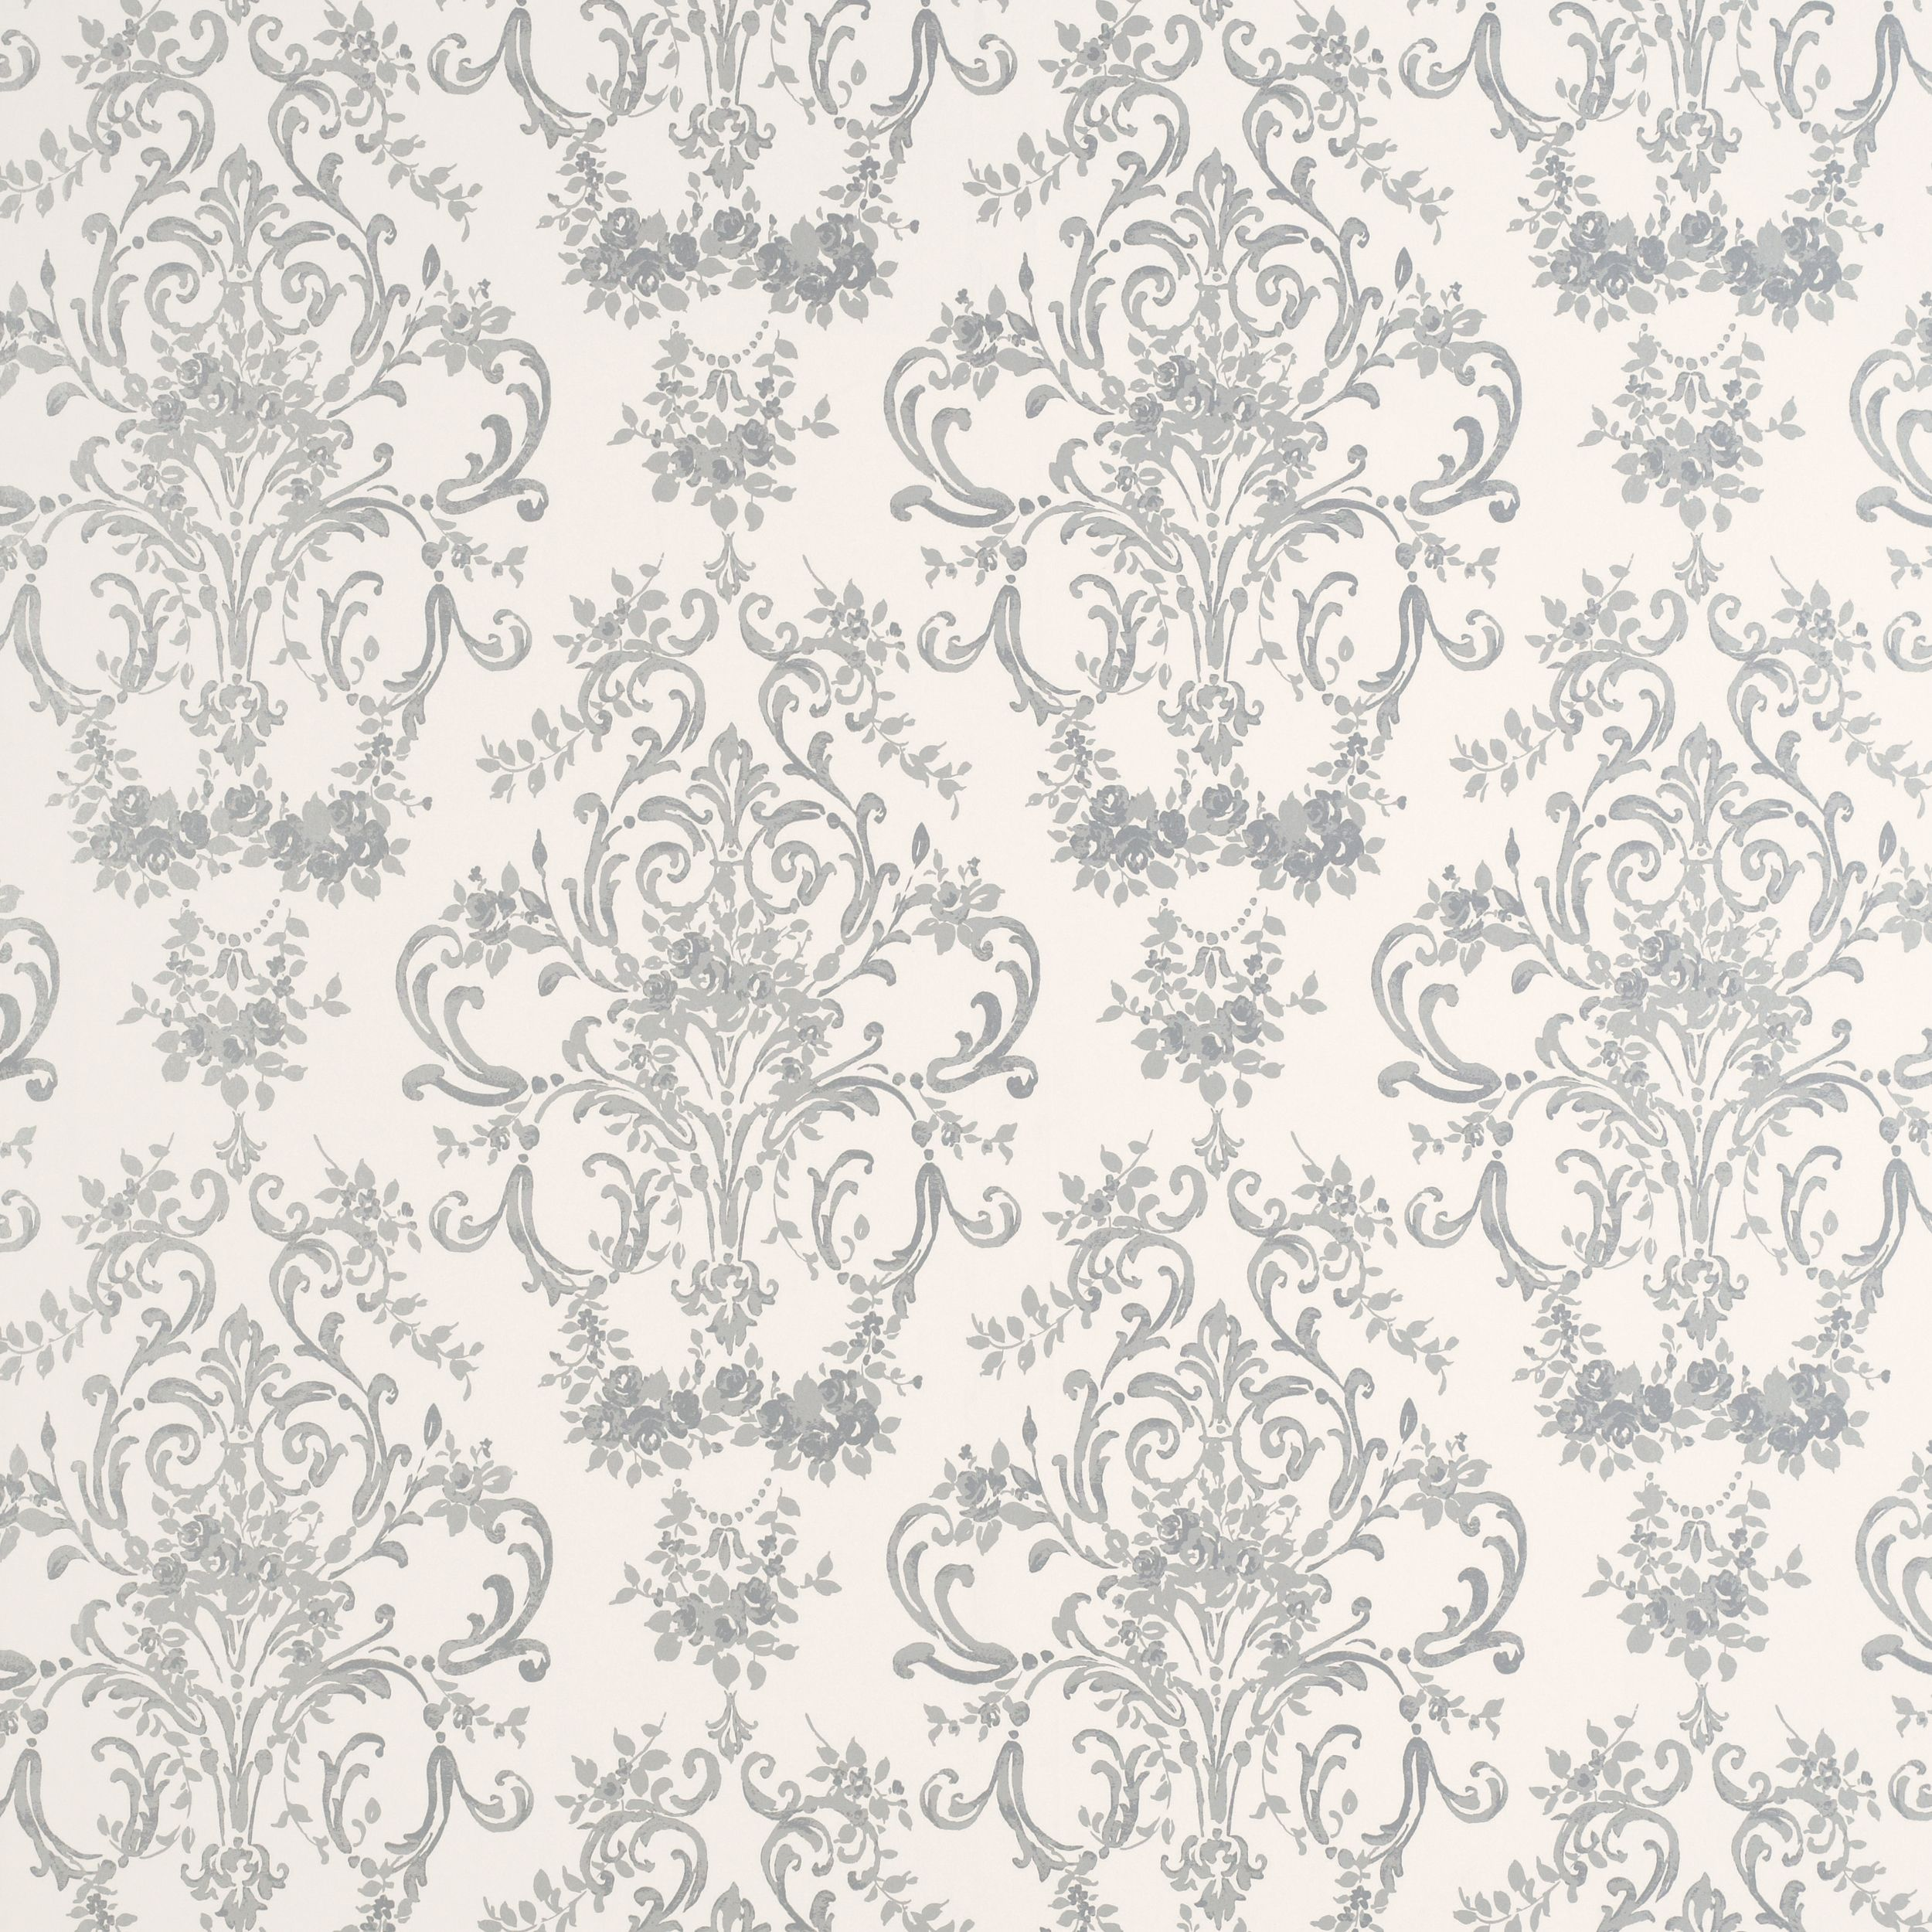 38.00 - Laura Ashley - Aston Silver Patterned Wallpaper | Products I ...